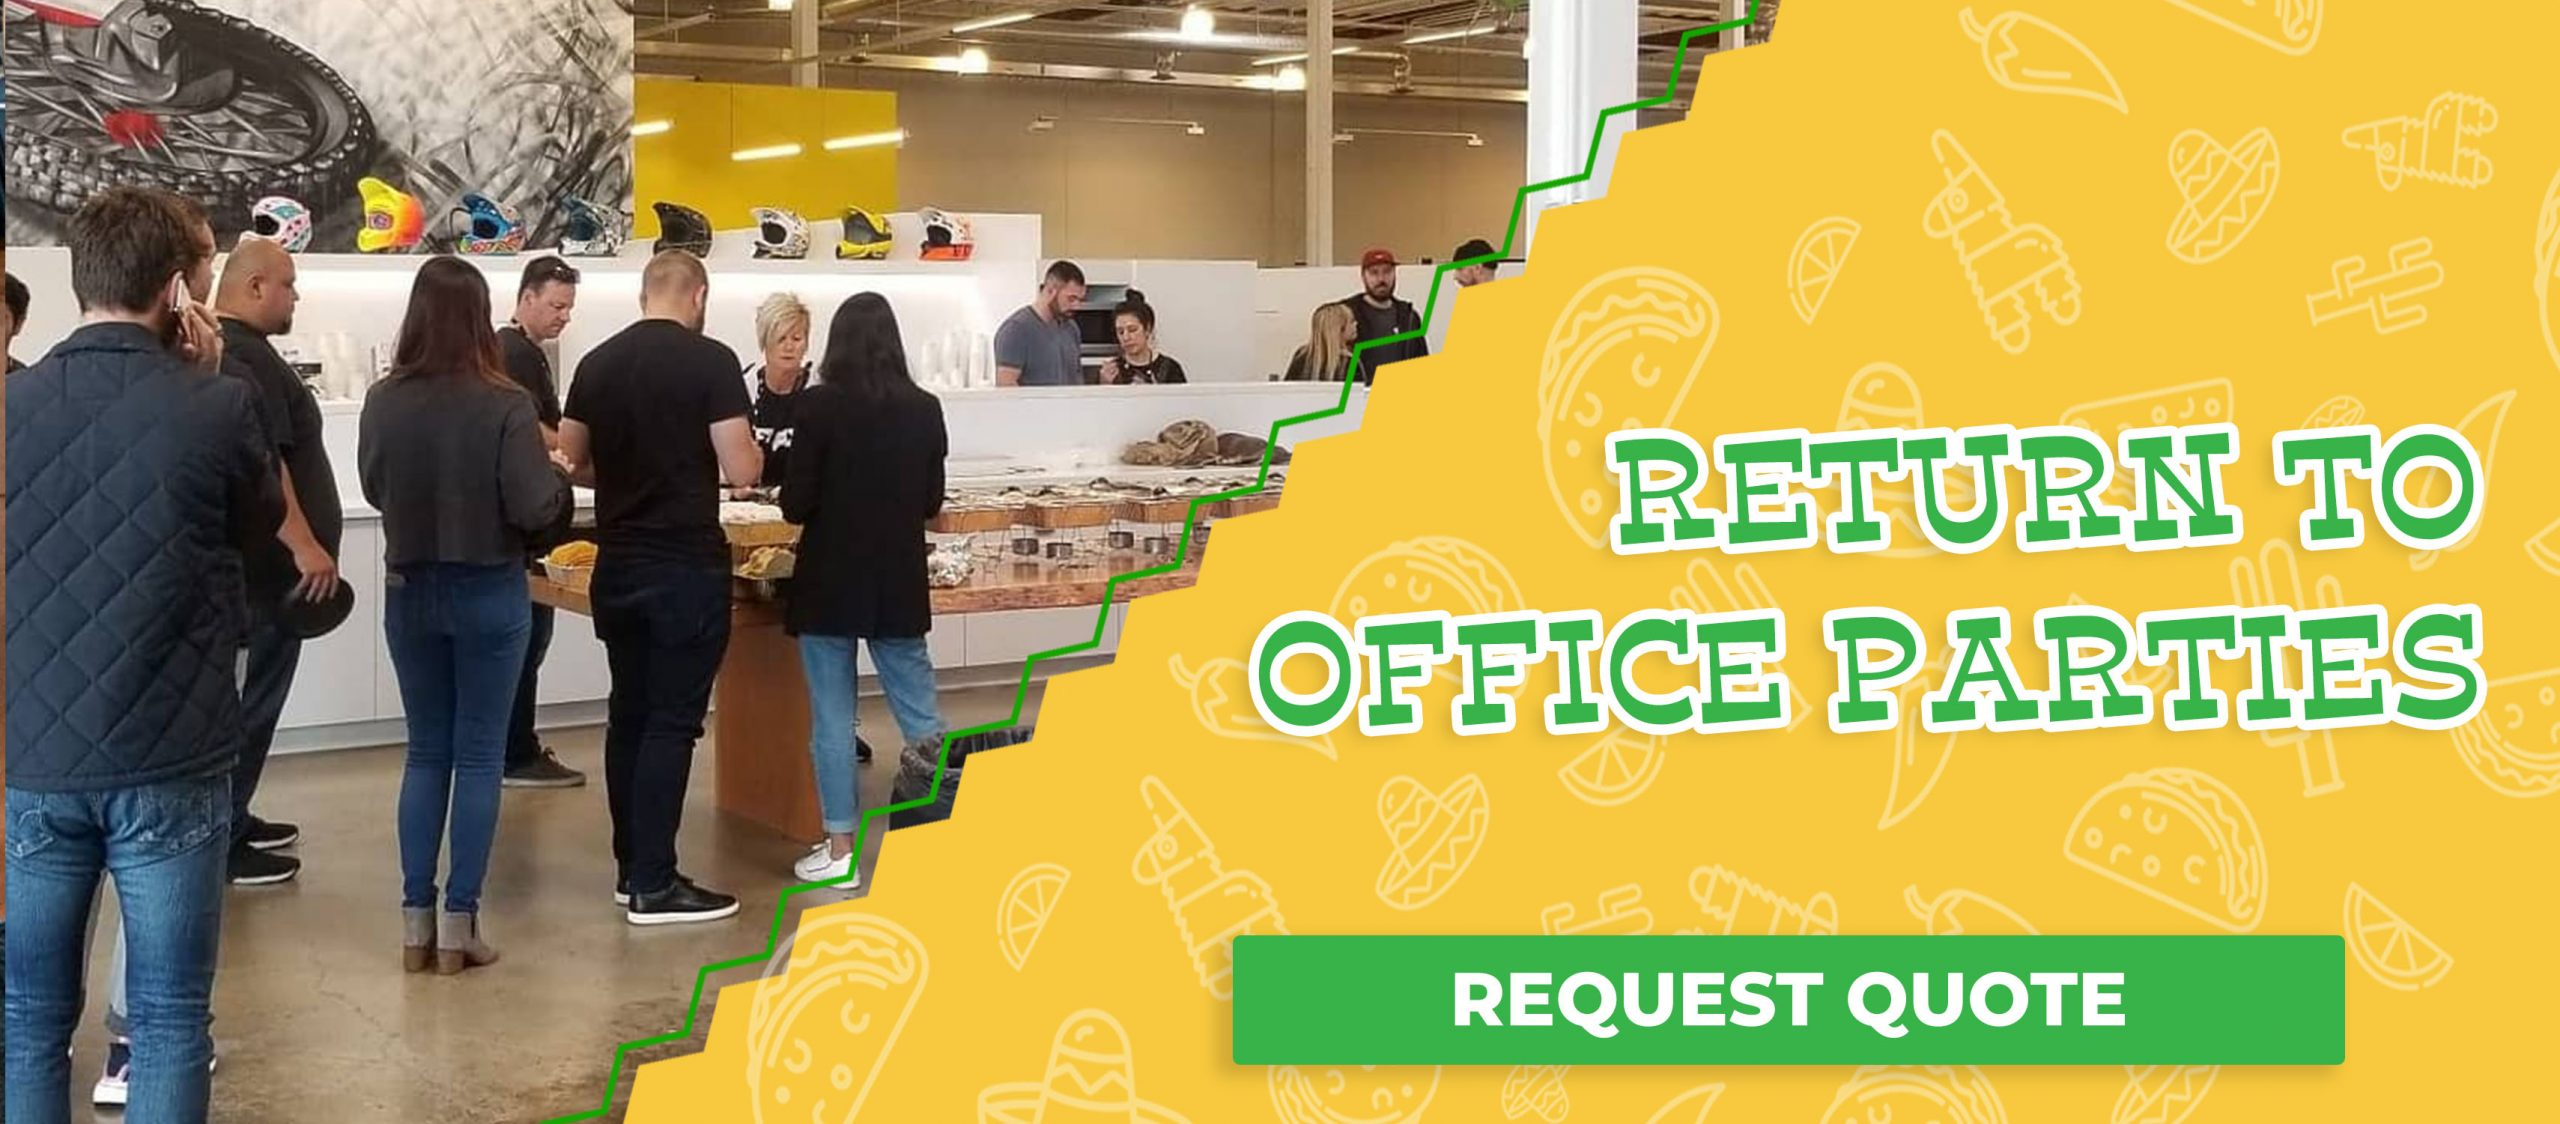 Return To Office Lunch Parties For Employees, Request Quote Today!